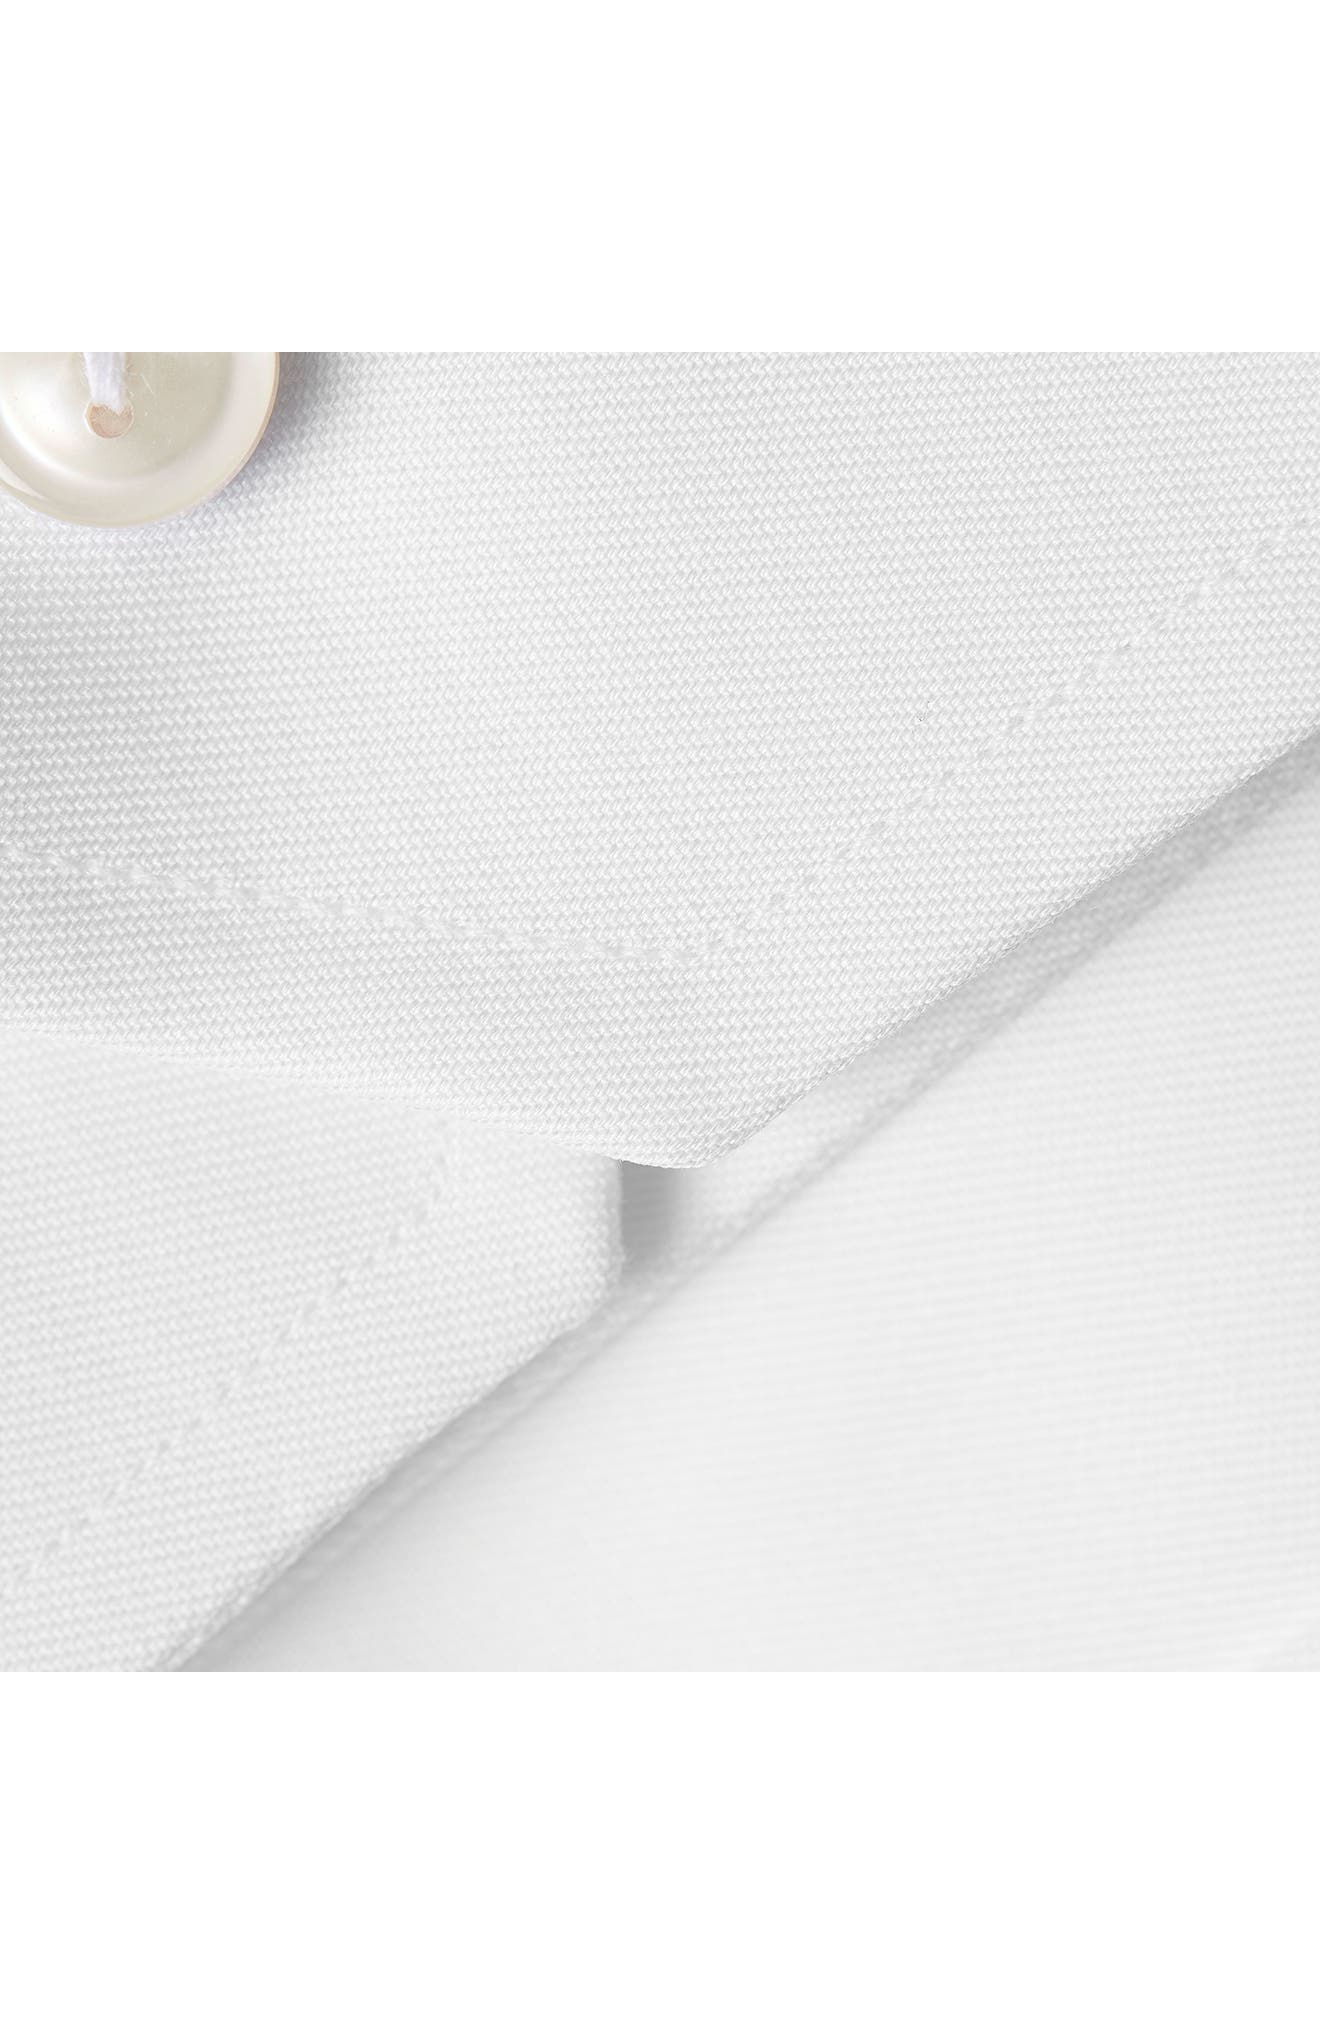 Classic Fit Twill Dress Shirt,                             Alternate thumbnail 3, color,                             WHITE